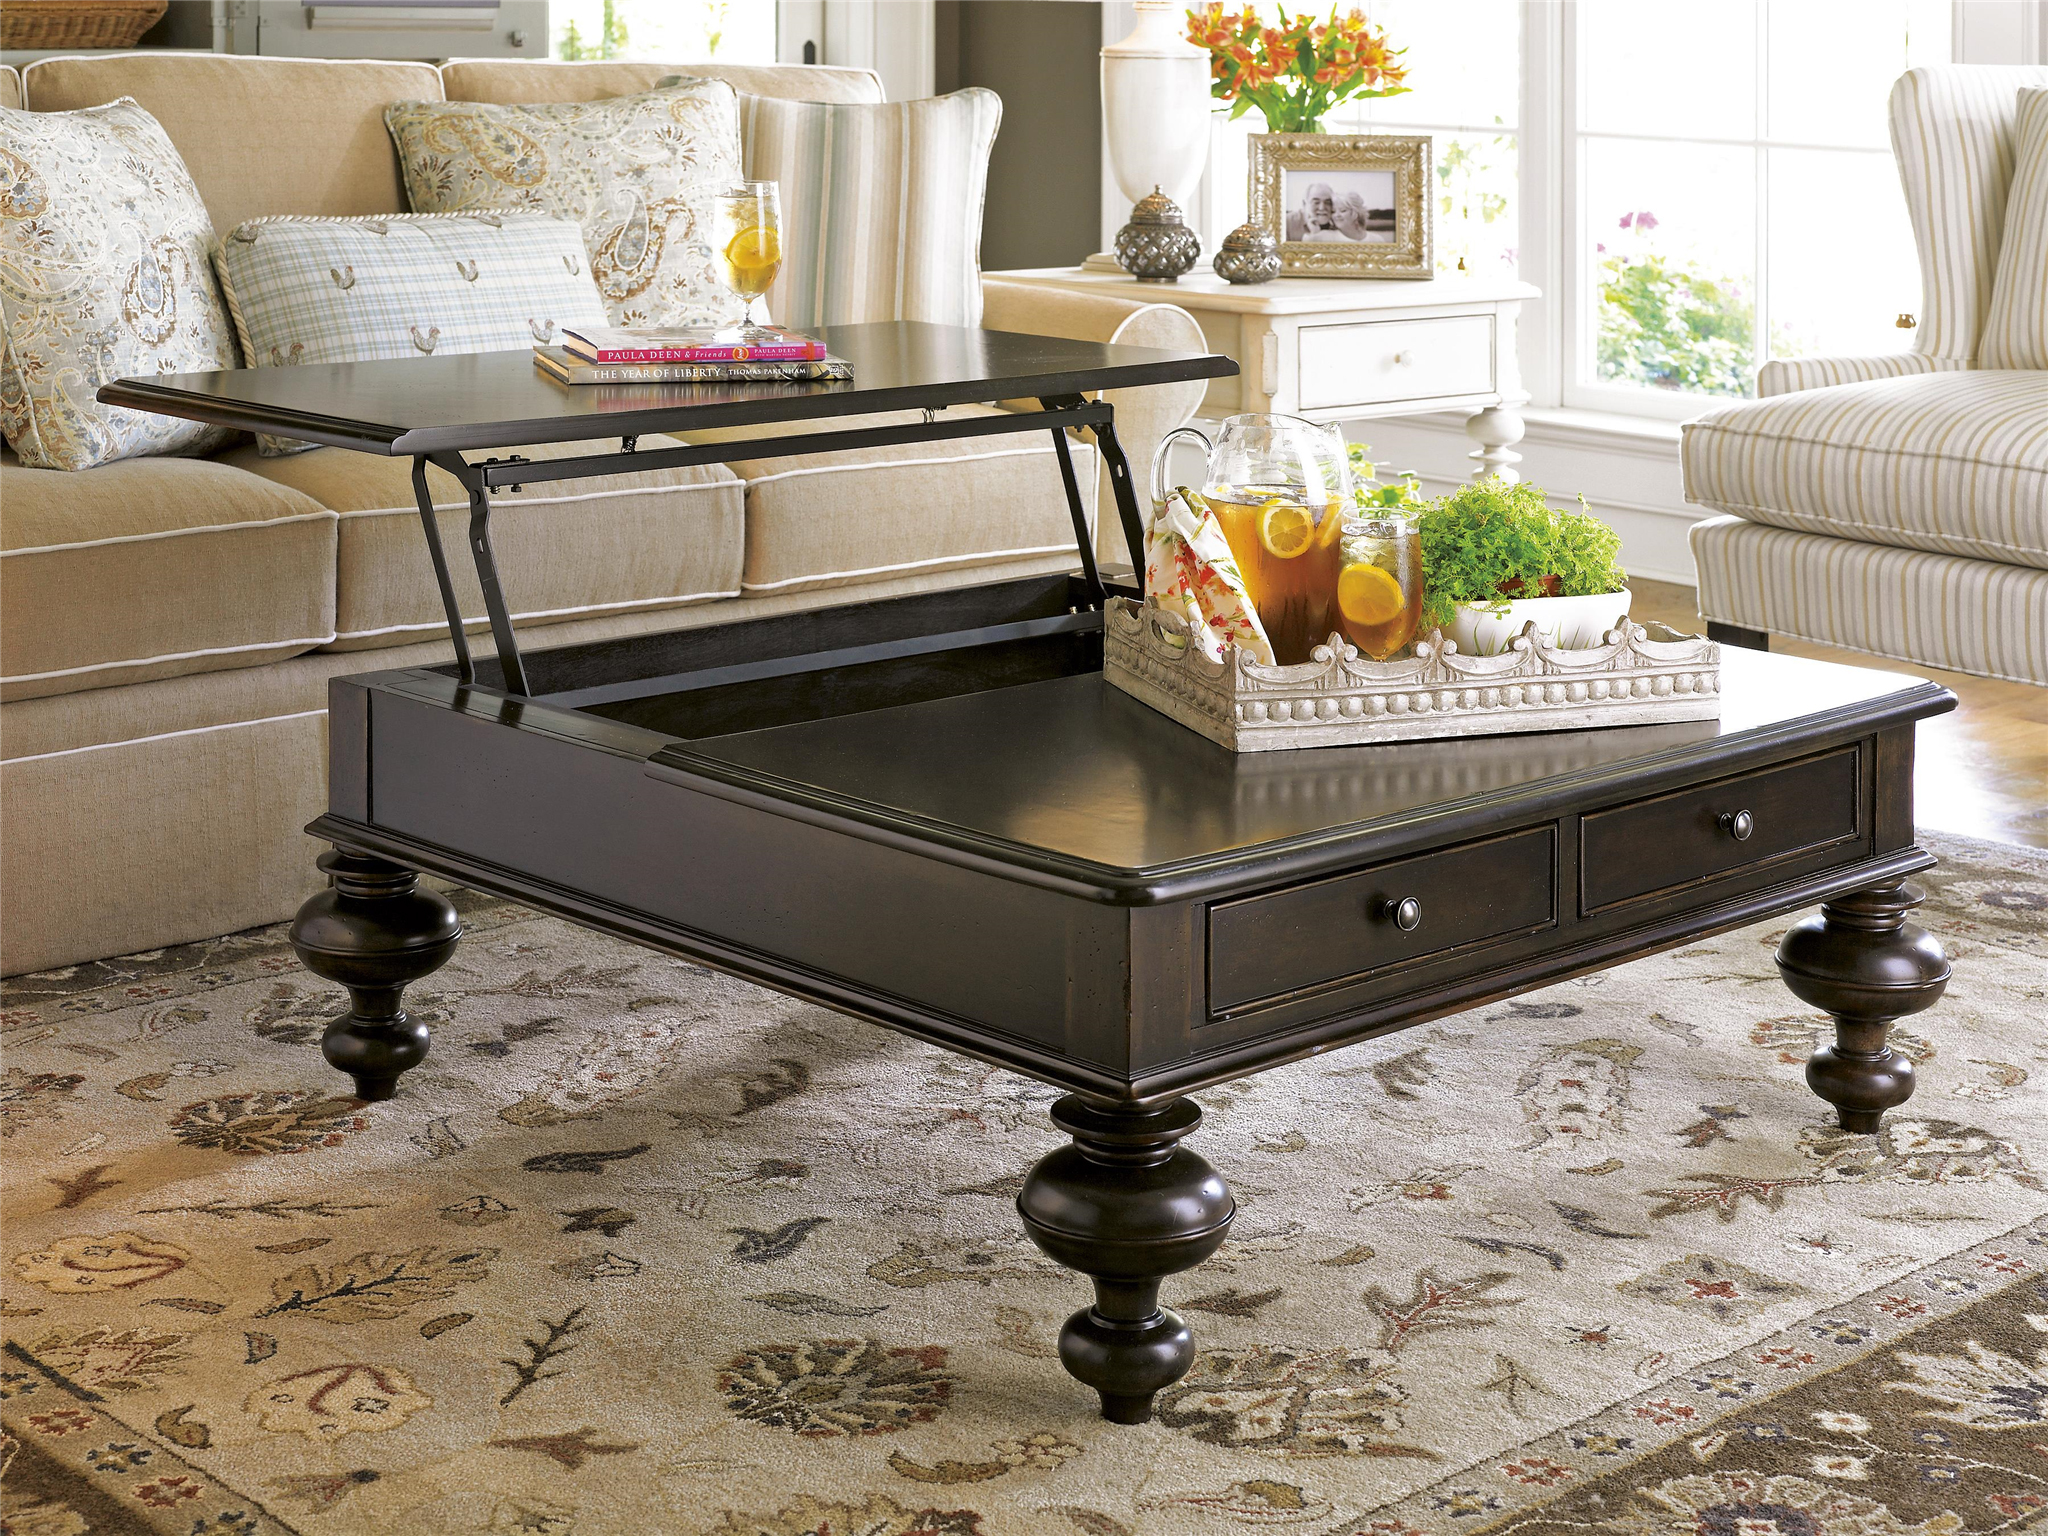 Put Your Feet Up Table  Loading zoom. Universal Furniture   Paula Deen Home   Put Your Feet Up Table